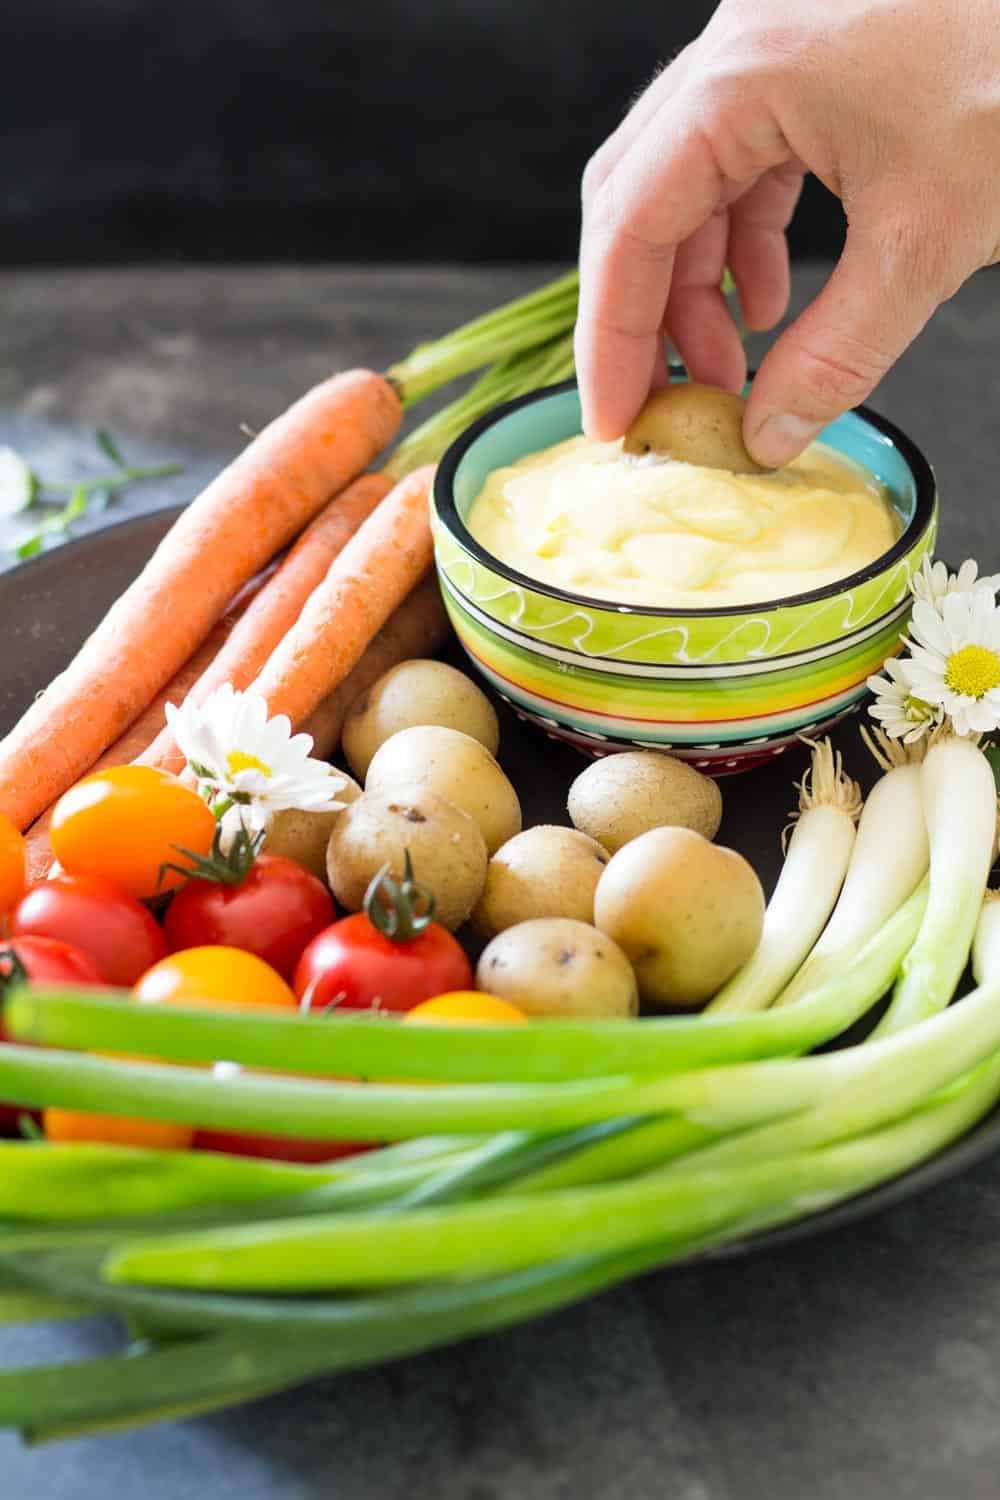 Plate of fresh carrots, cherry tomatoes, green onions and baby potatoes, and a hand dipping a potato into Huancaina dip.